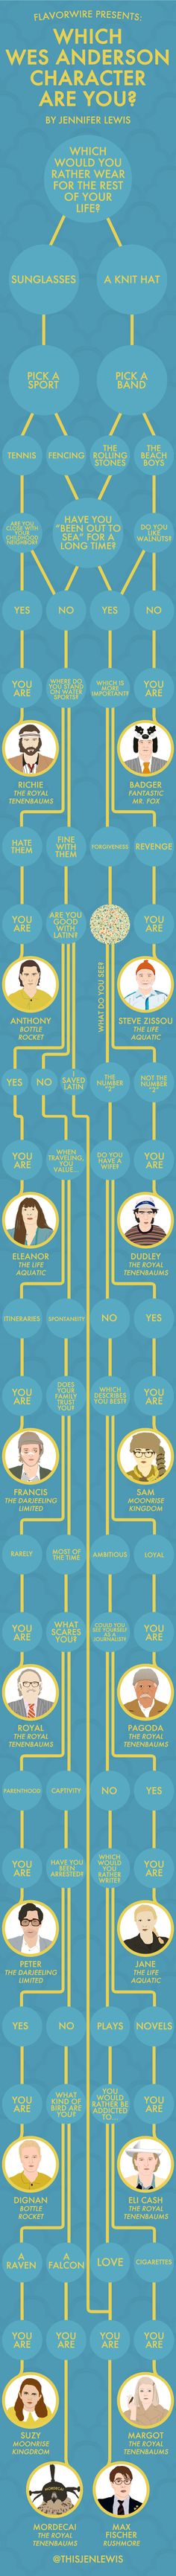 Which Wes Anderson Character Are You? I am Suzy from Moonrise Kingdom.